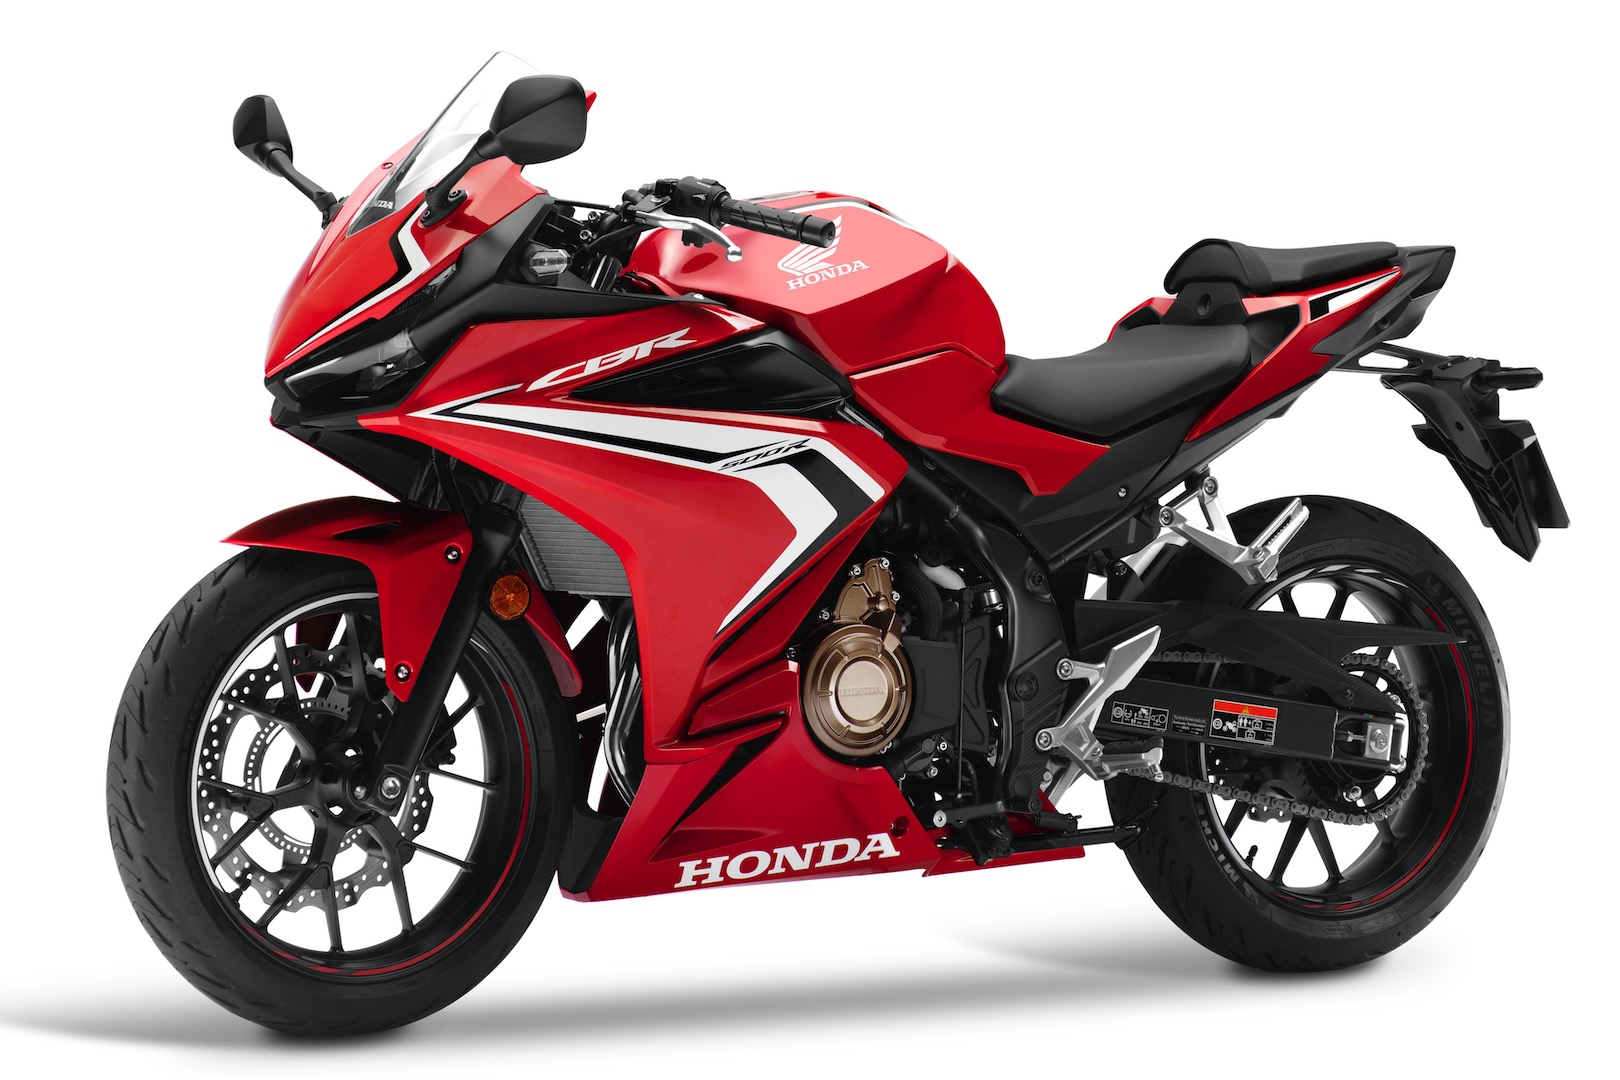 2019 Honda Cbr500r First Look 10 Fast Facts